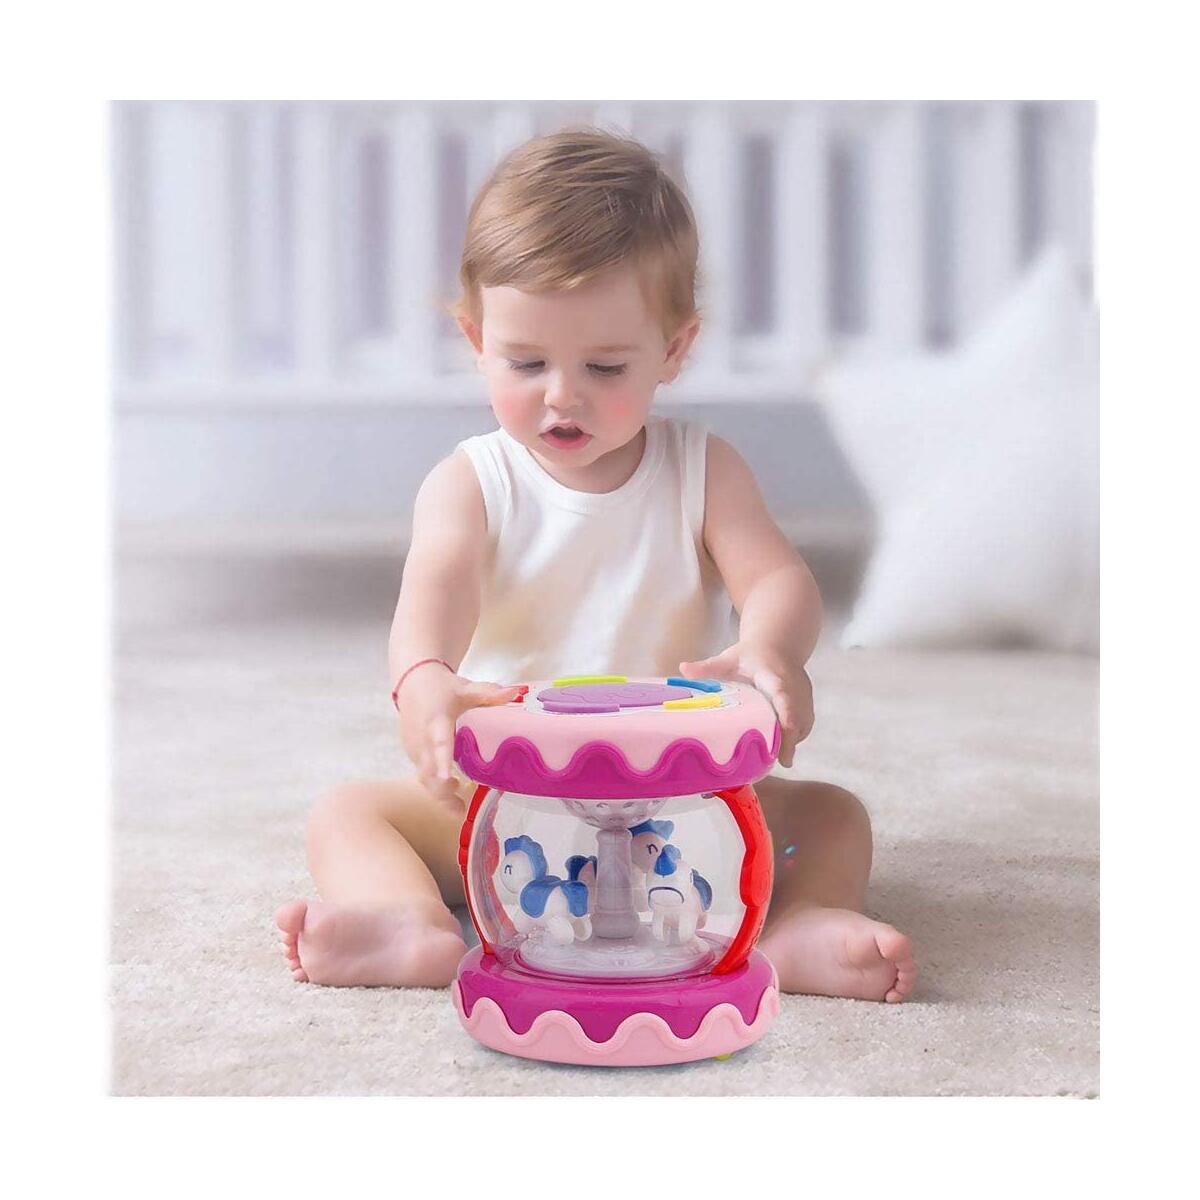 WISHTIME Baby Musical Mini Drum Toy - Educational Learning Toy for Baby Electronic Drum Instruments with Lights for 1 2 3 Year Old Toddlers Kids Boys and Girls(Pink)